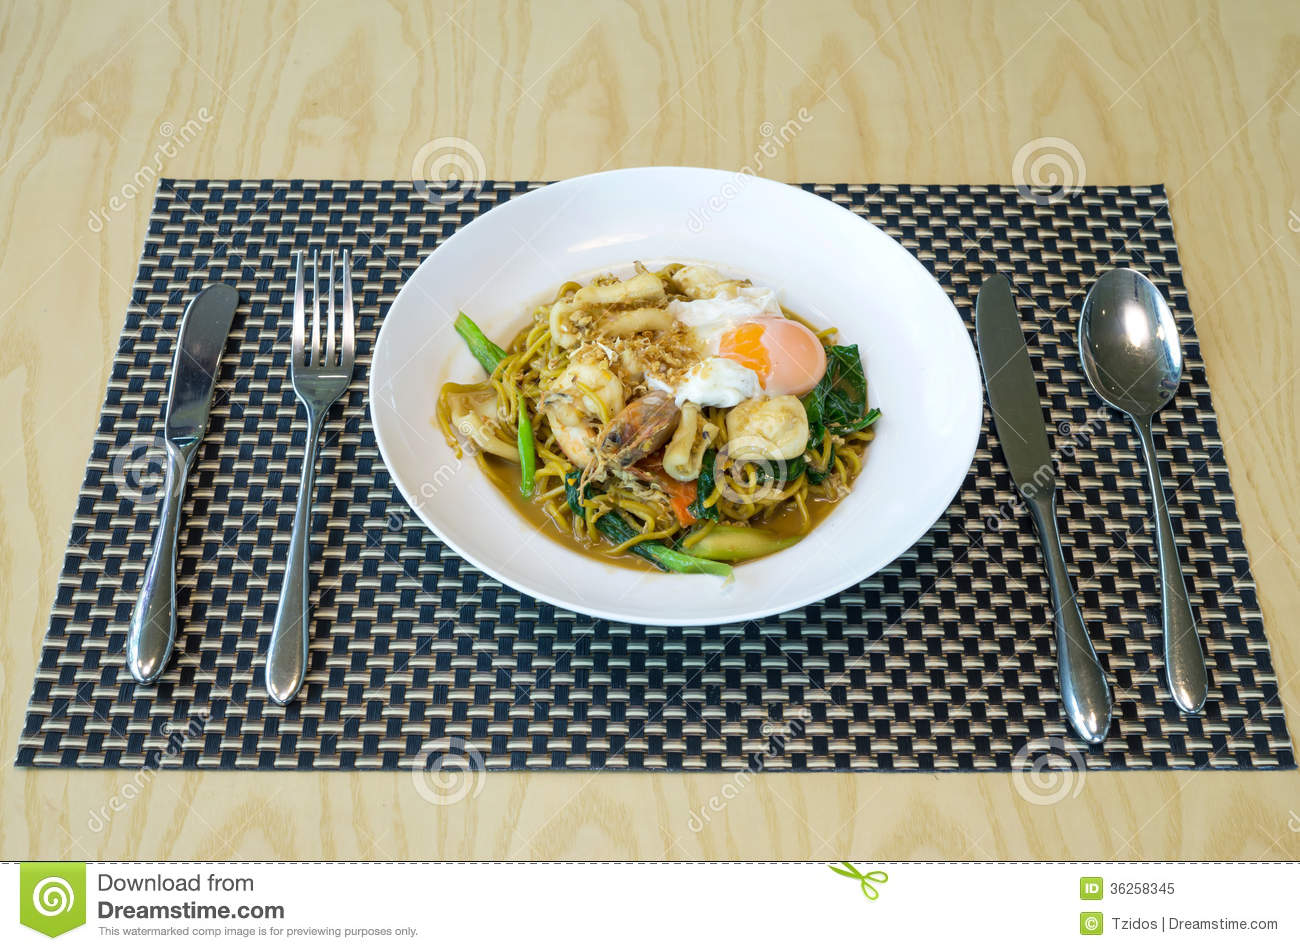 Fried Noodles With Sea Food Vegetables And Poached Egg Thai Food